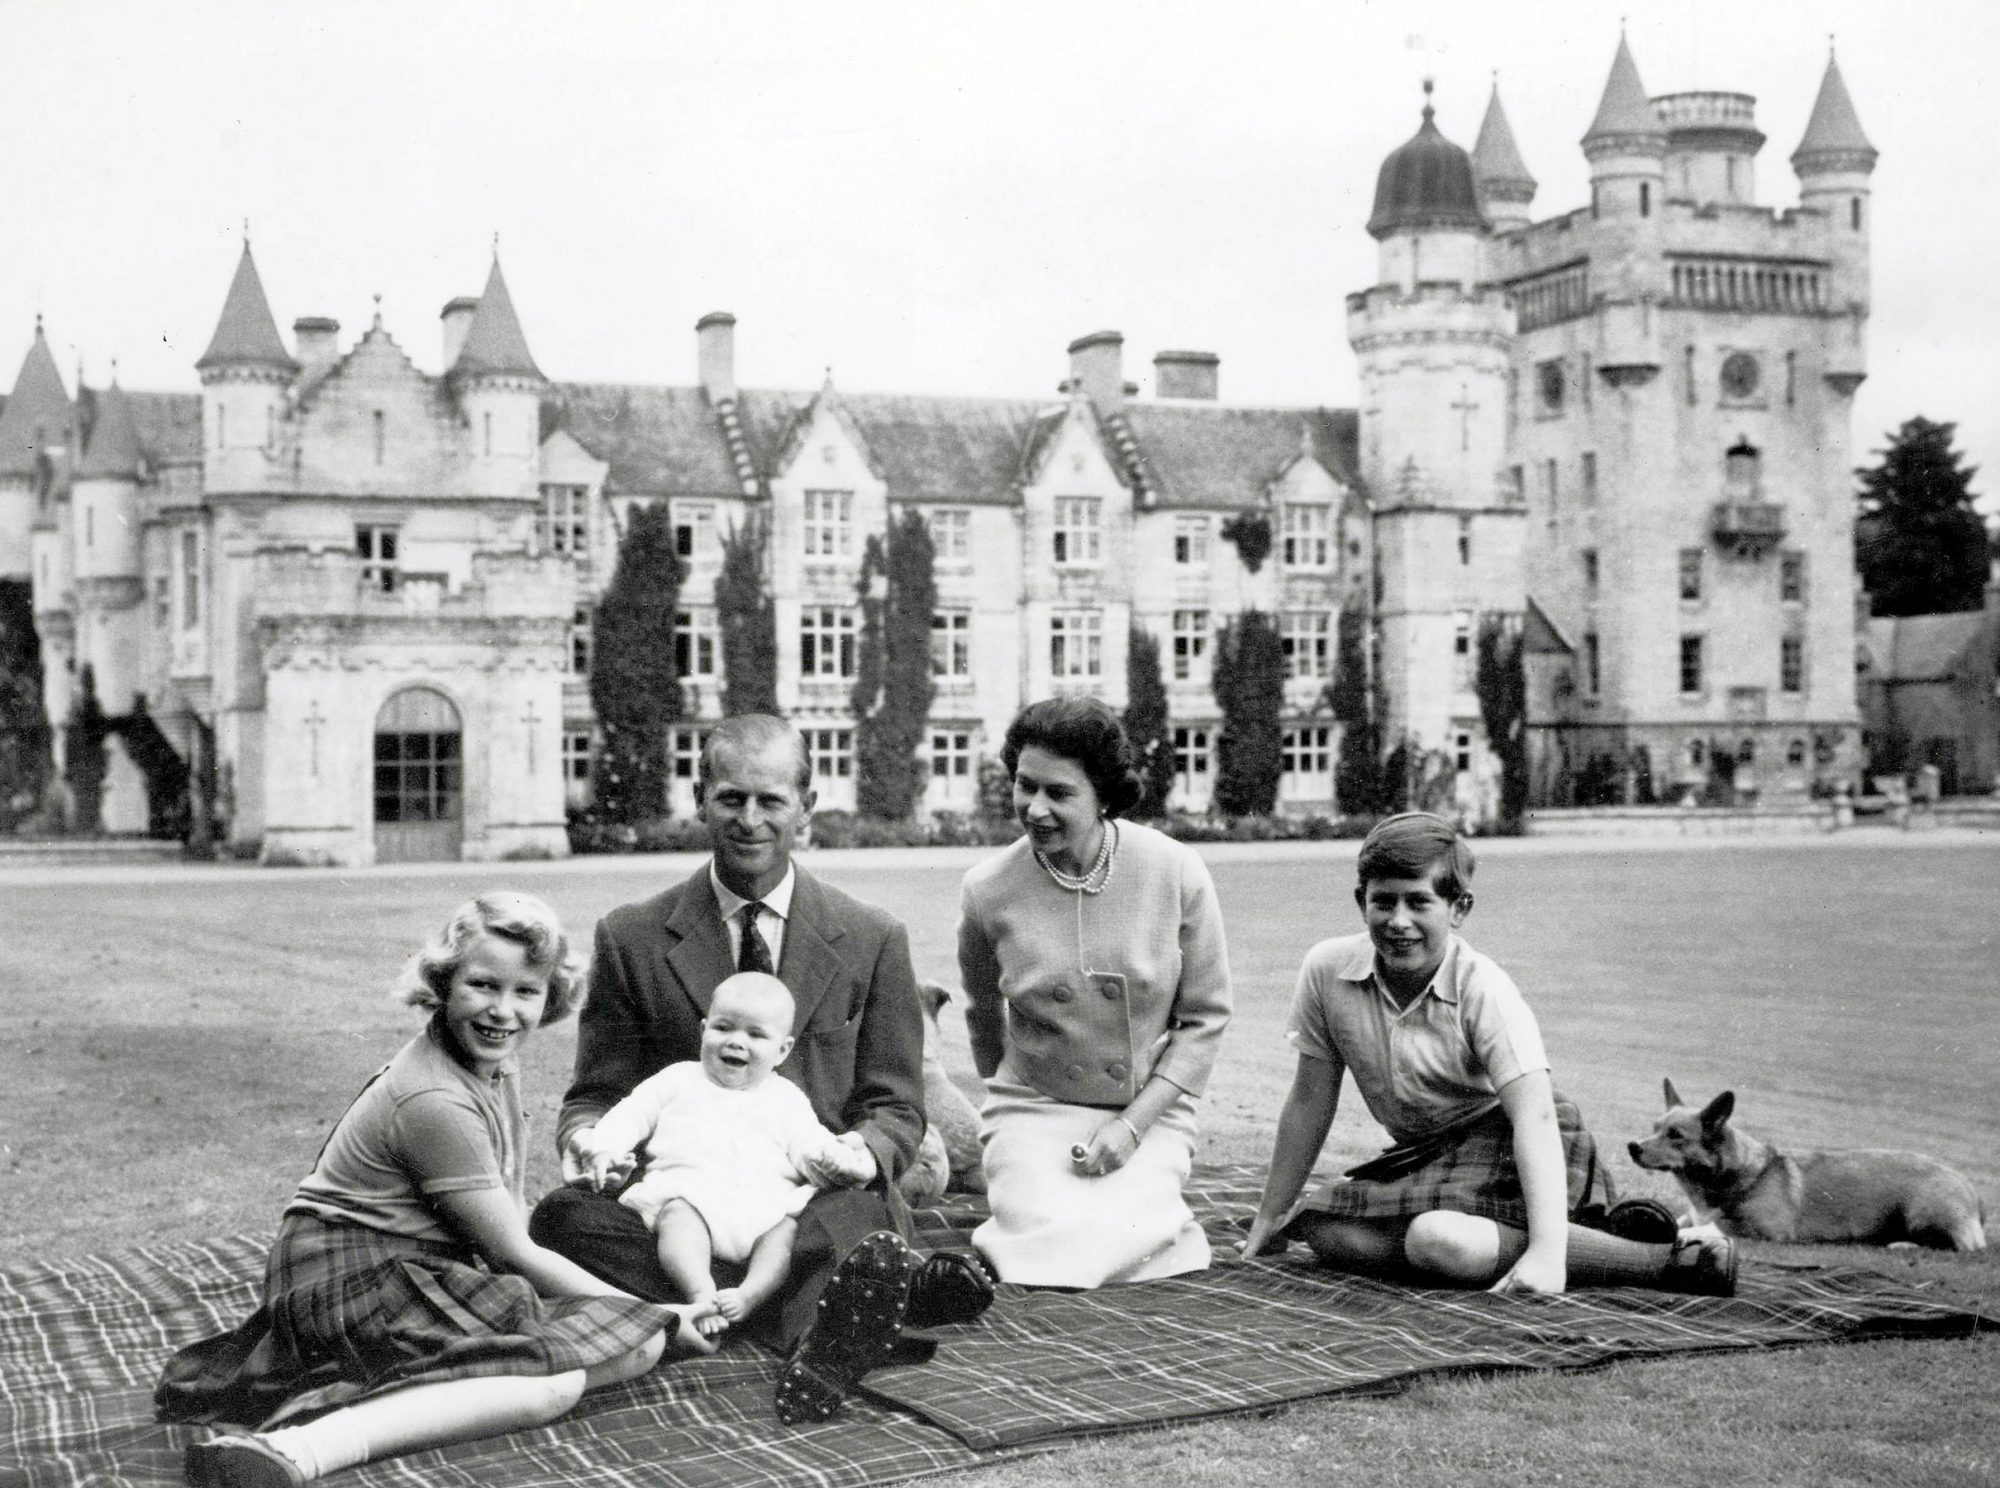 Royalty. 9th September 1960. During their holiday on the Balmoral Castle estate the Royal family sit together within the grounds, a happy smiling baby Prince Andrew held on his father the Duke of Edinburgh+s lap. Pictured also smiling is Queen Elizabeth I